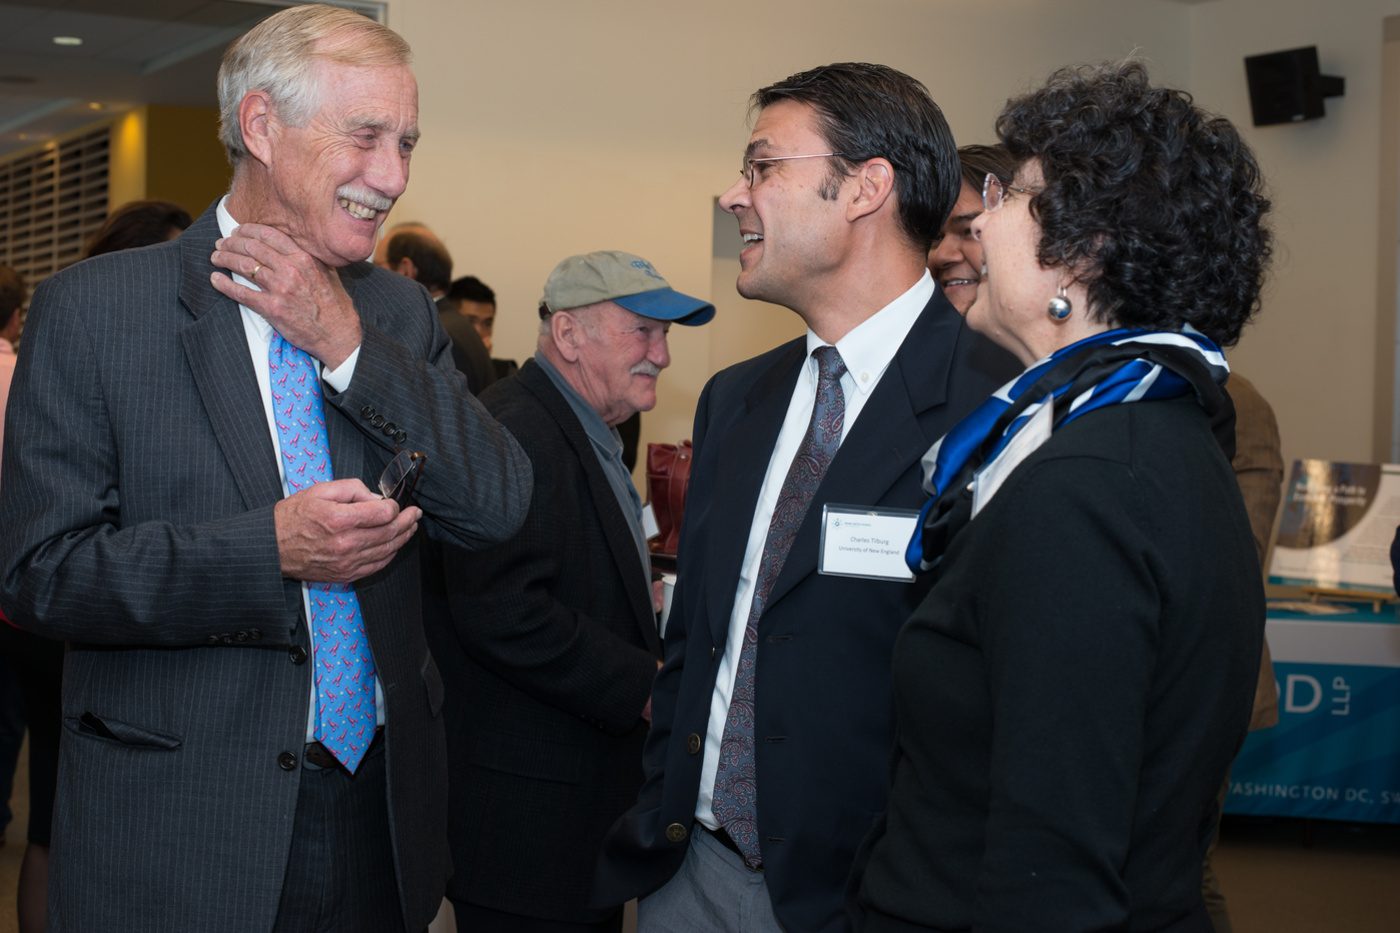 Senator Angus King talks with Dean Jeanne Hey and Associate Dean Charles Tilburg